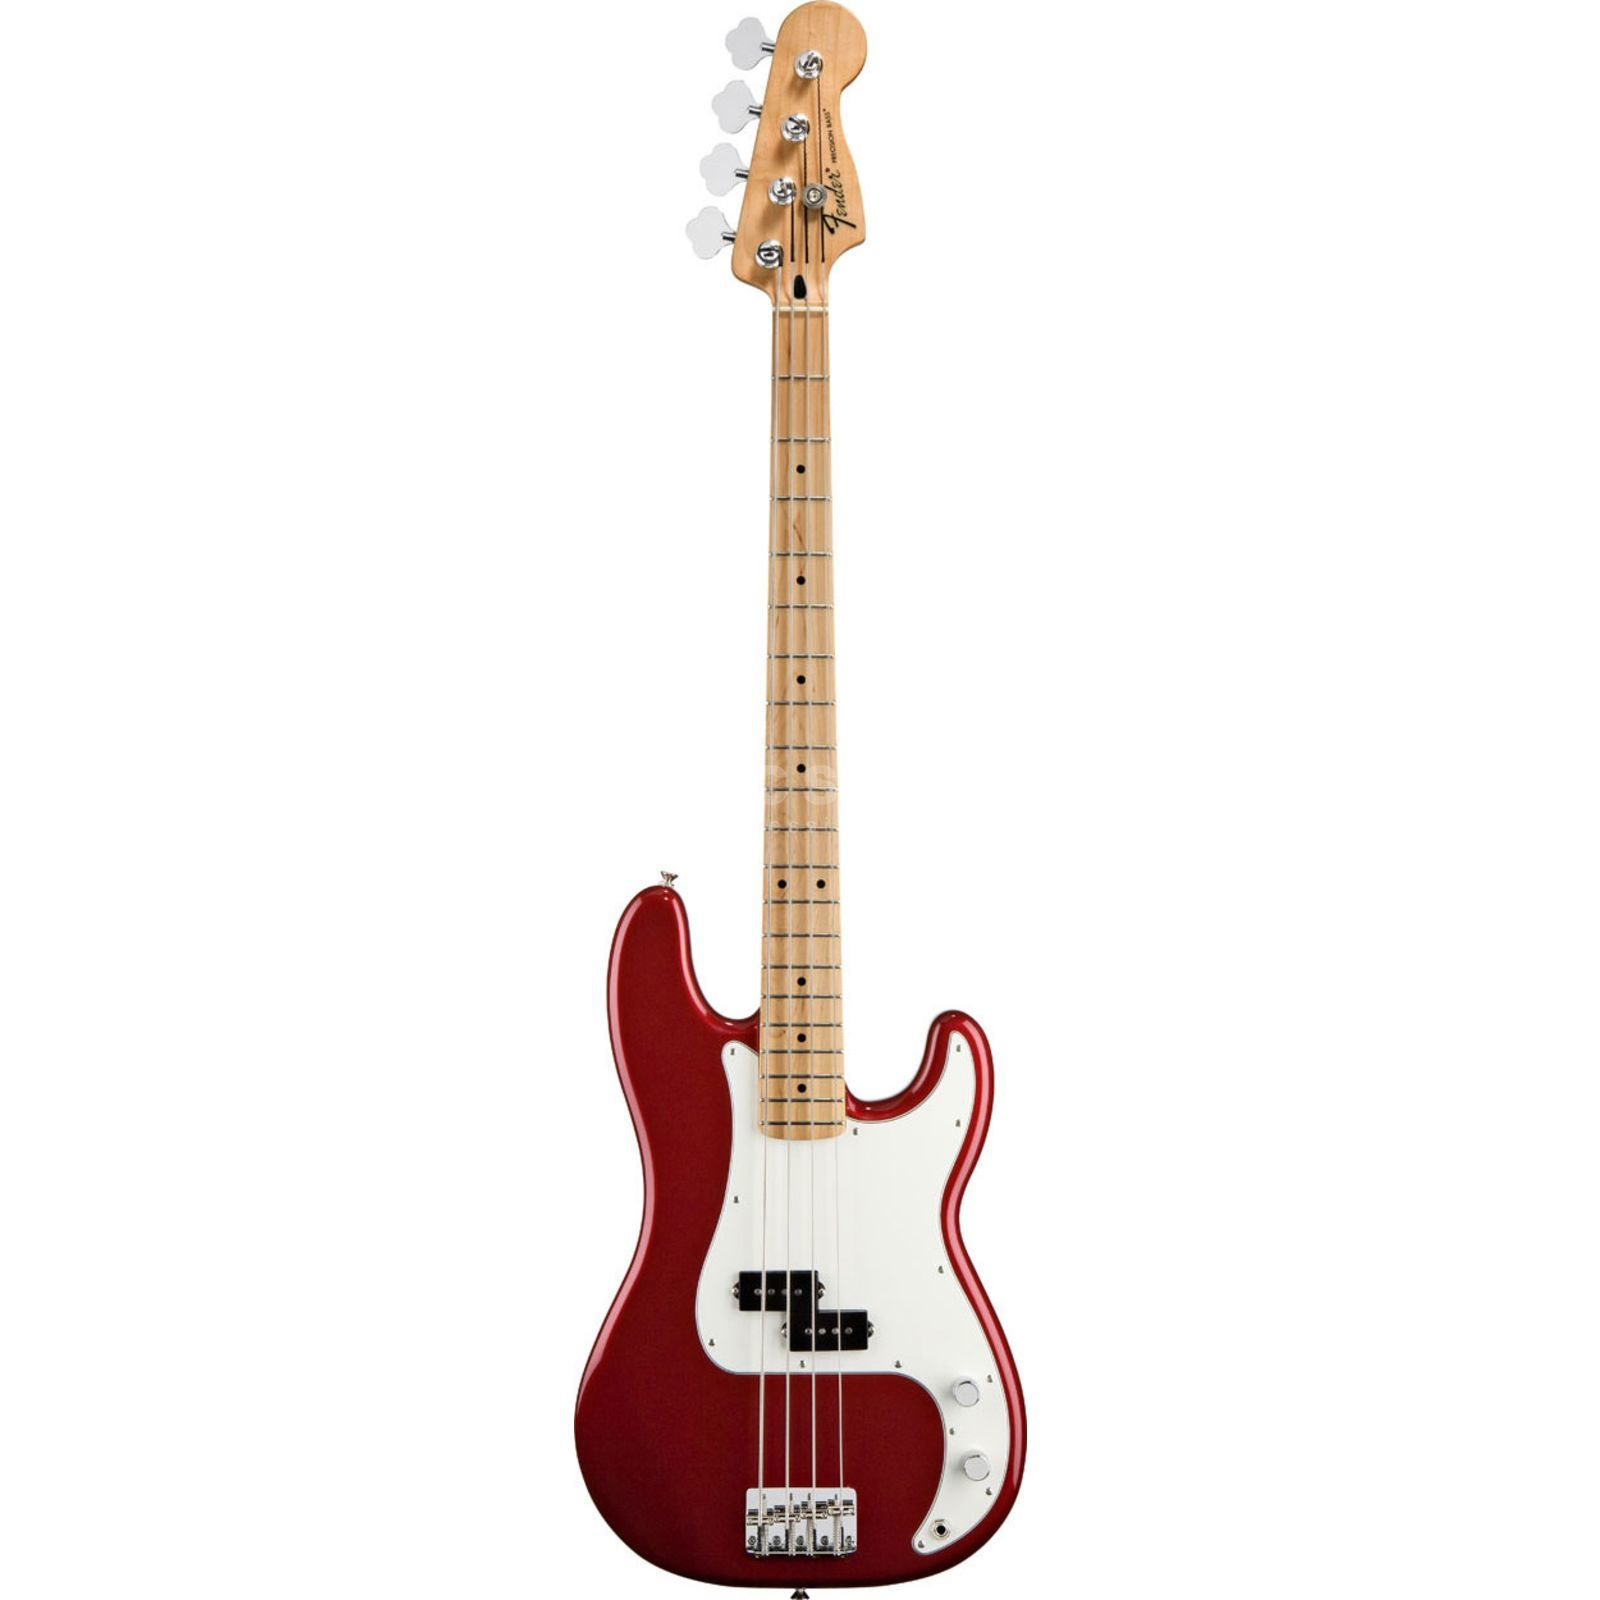 Fender Std. P-Bass MN CAR Candy Apple Red Imagen del producto